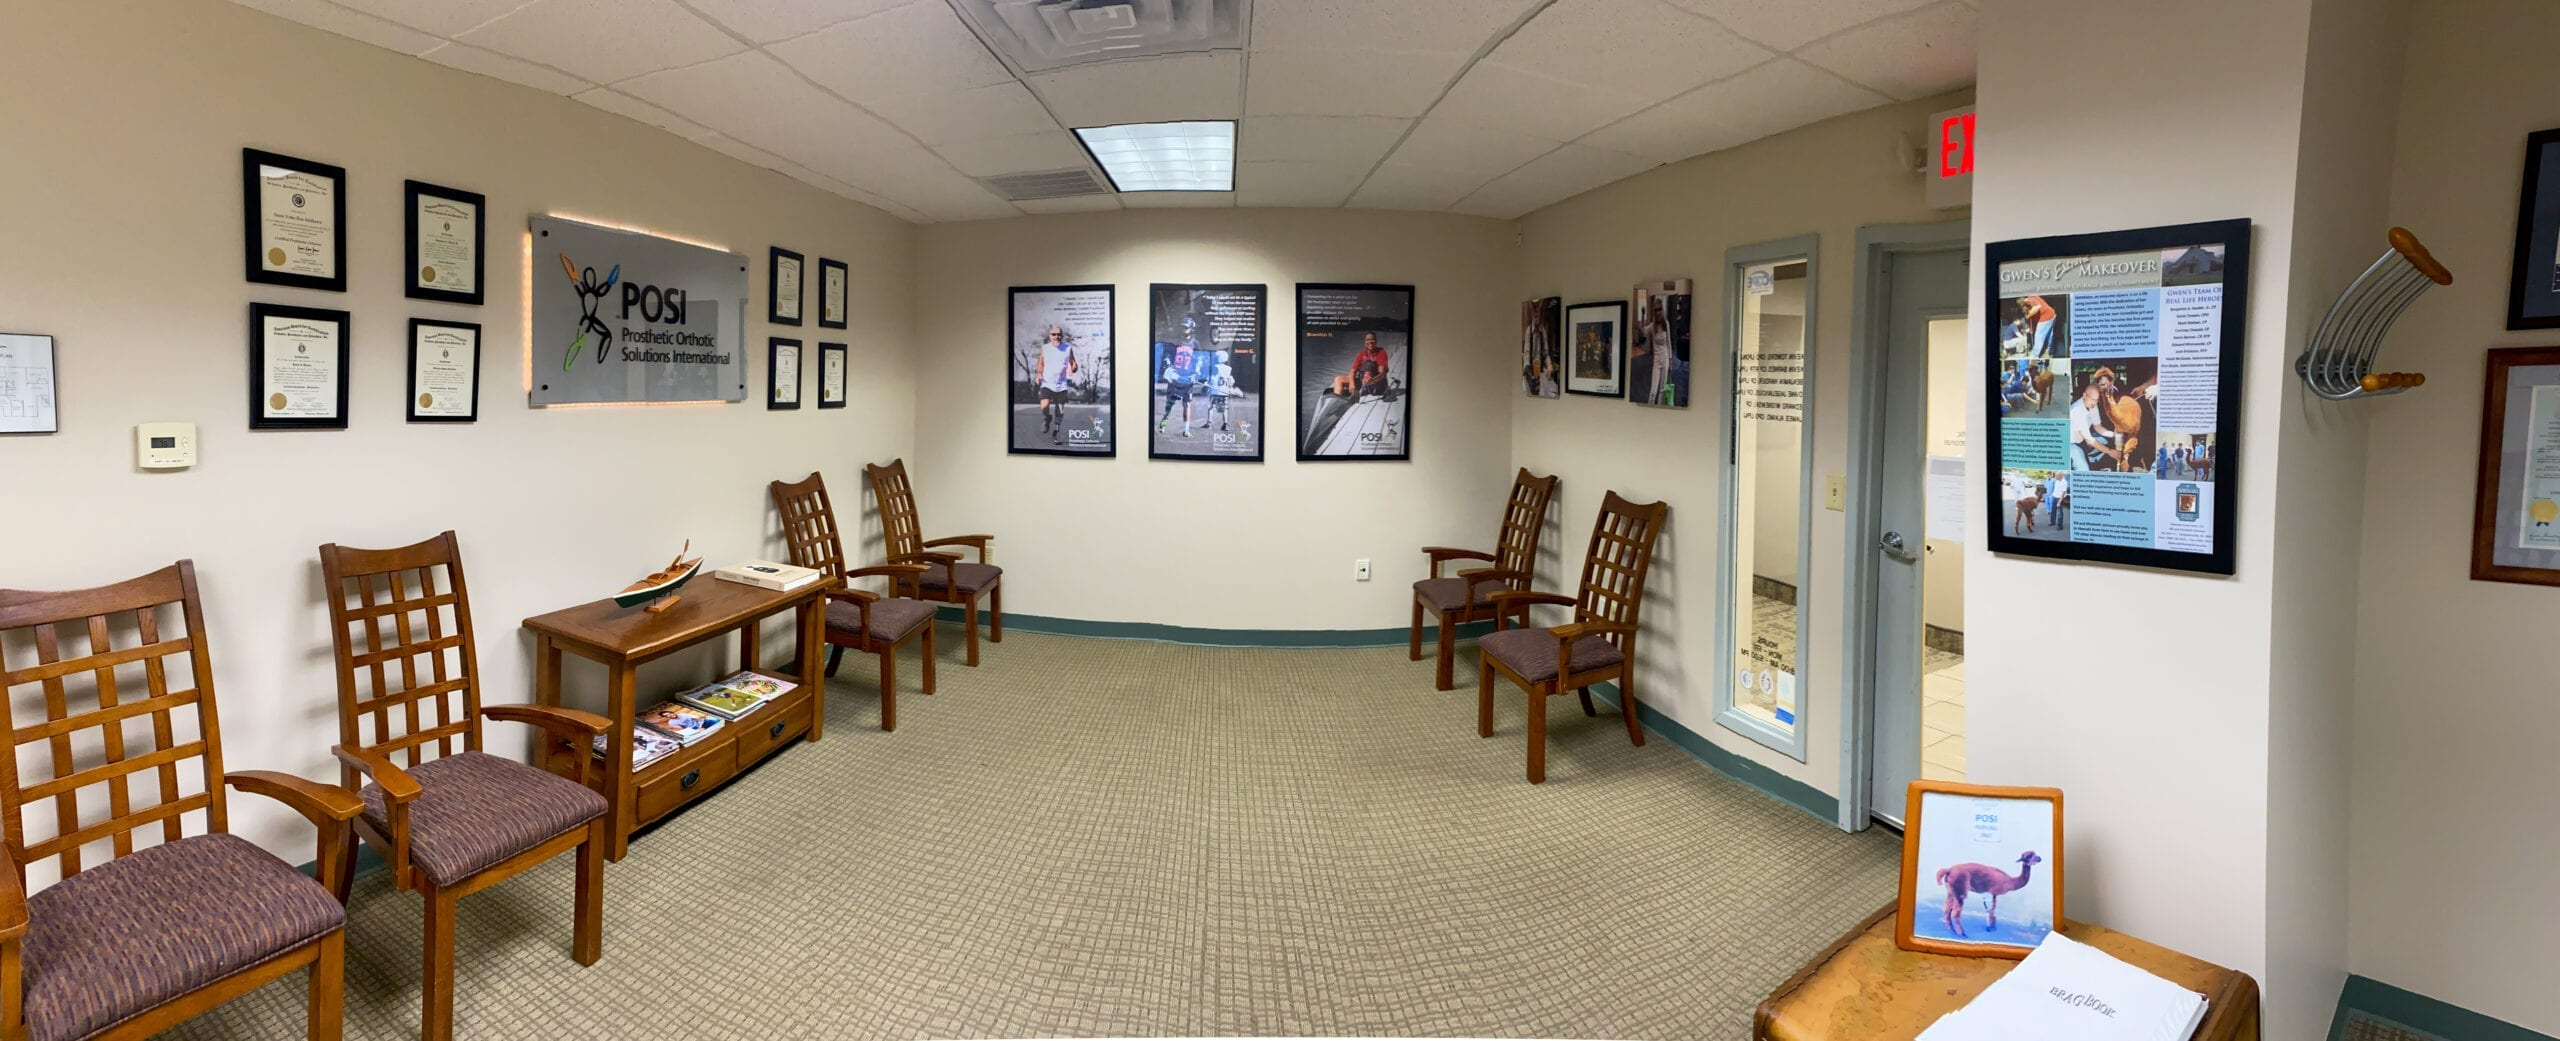 prosthetic orthotic solutions international waiting room